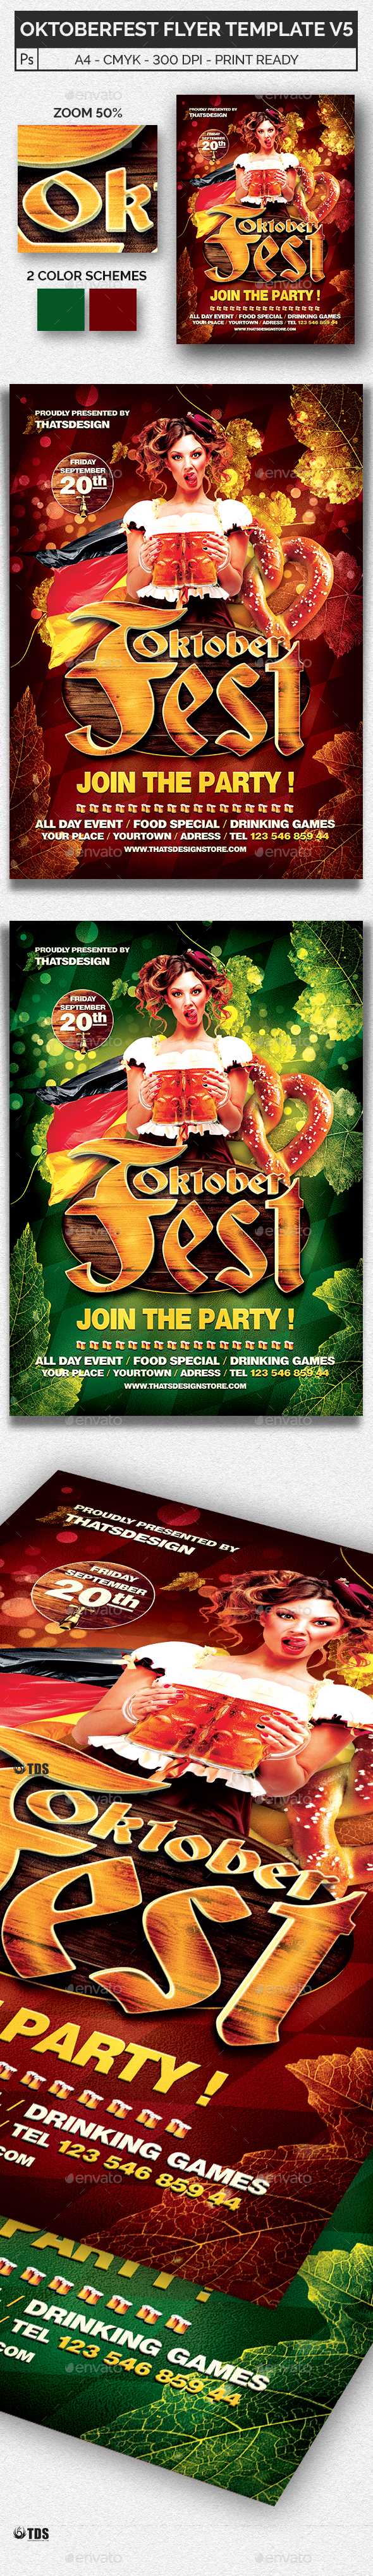 Oktoberfest Flyer Template V5 - Holidays Events